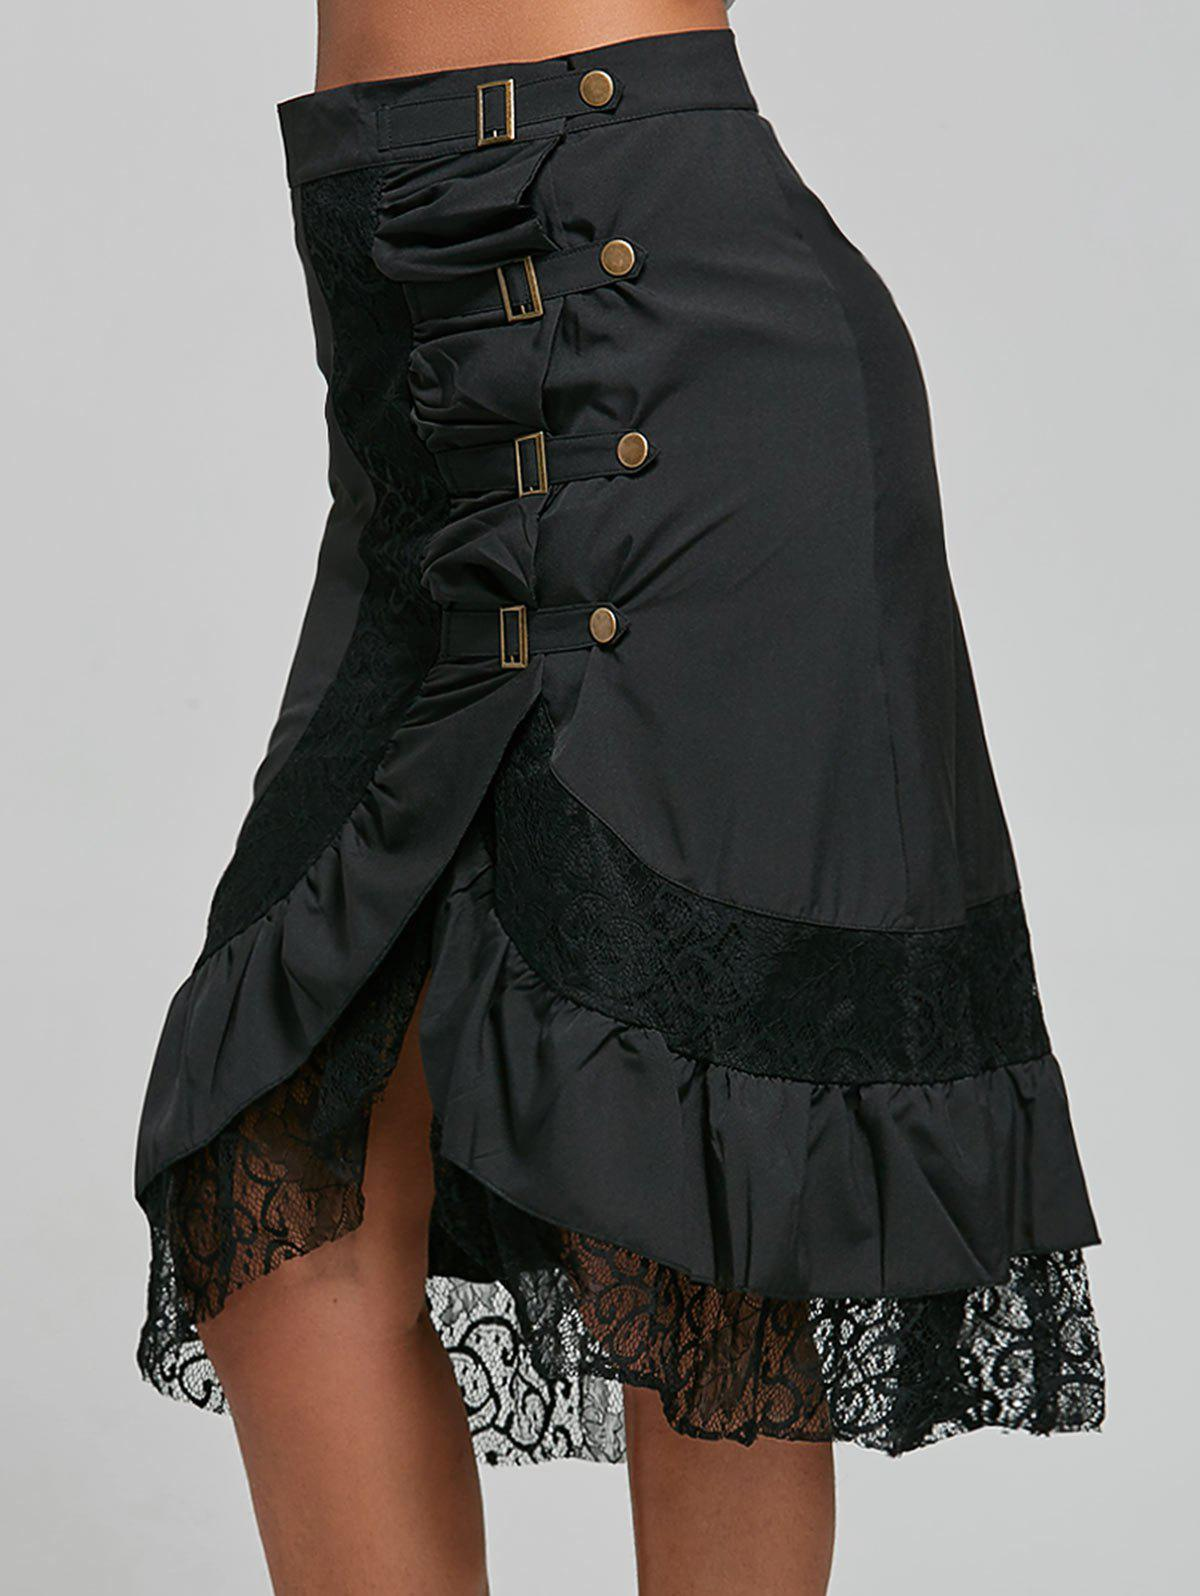 Punk Style Riveted Black Laced Skirt For Women - BLACK M